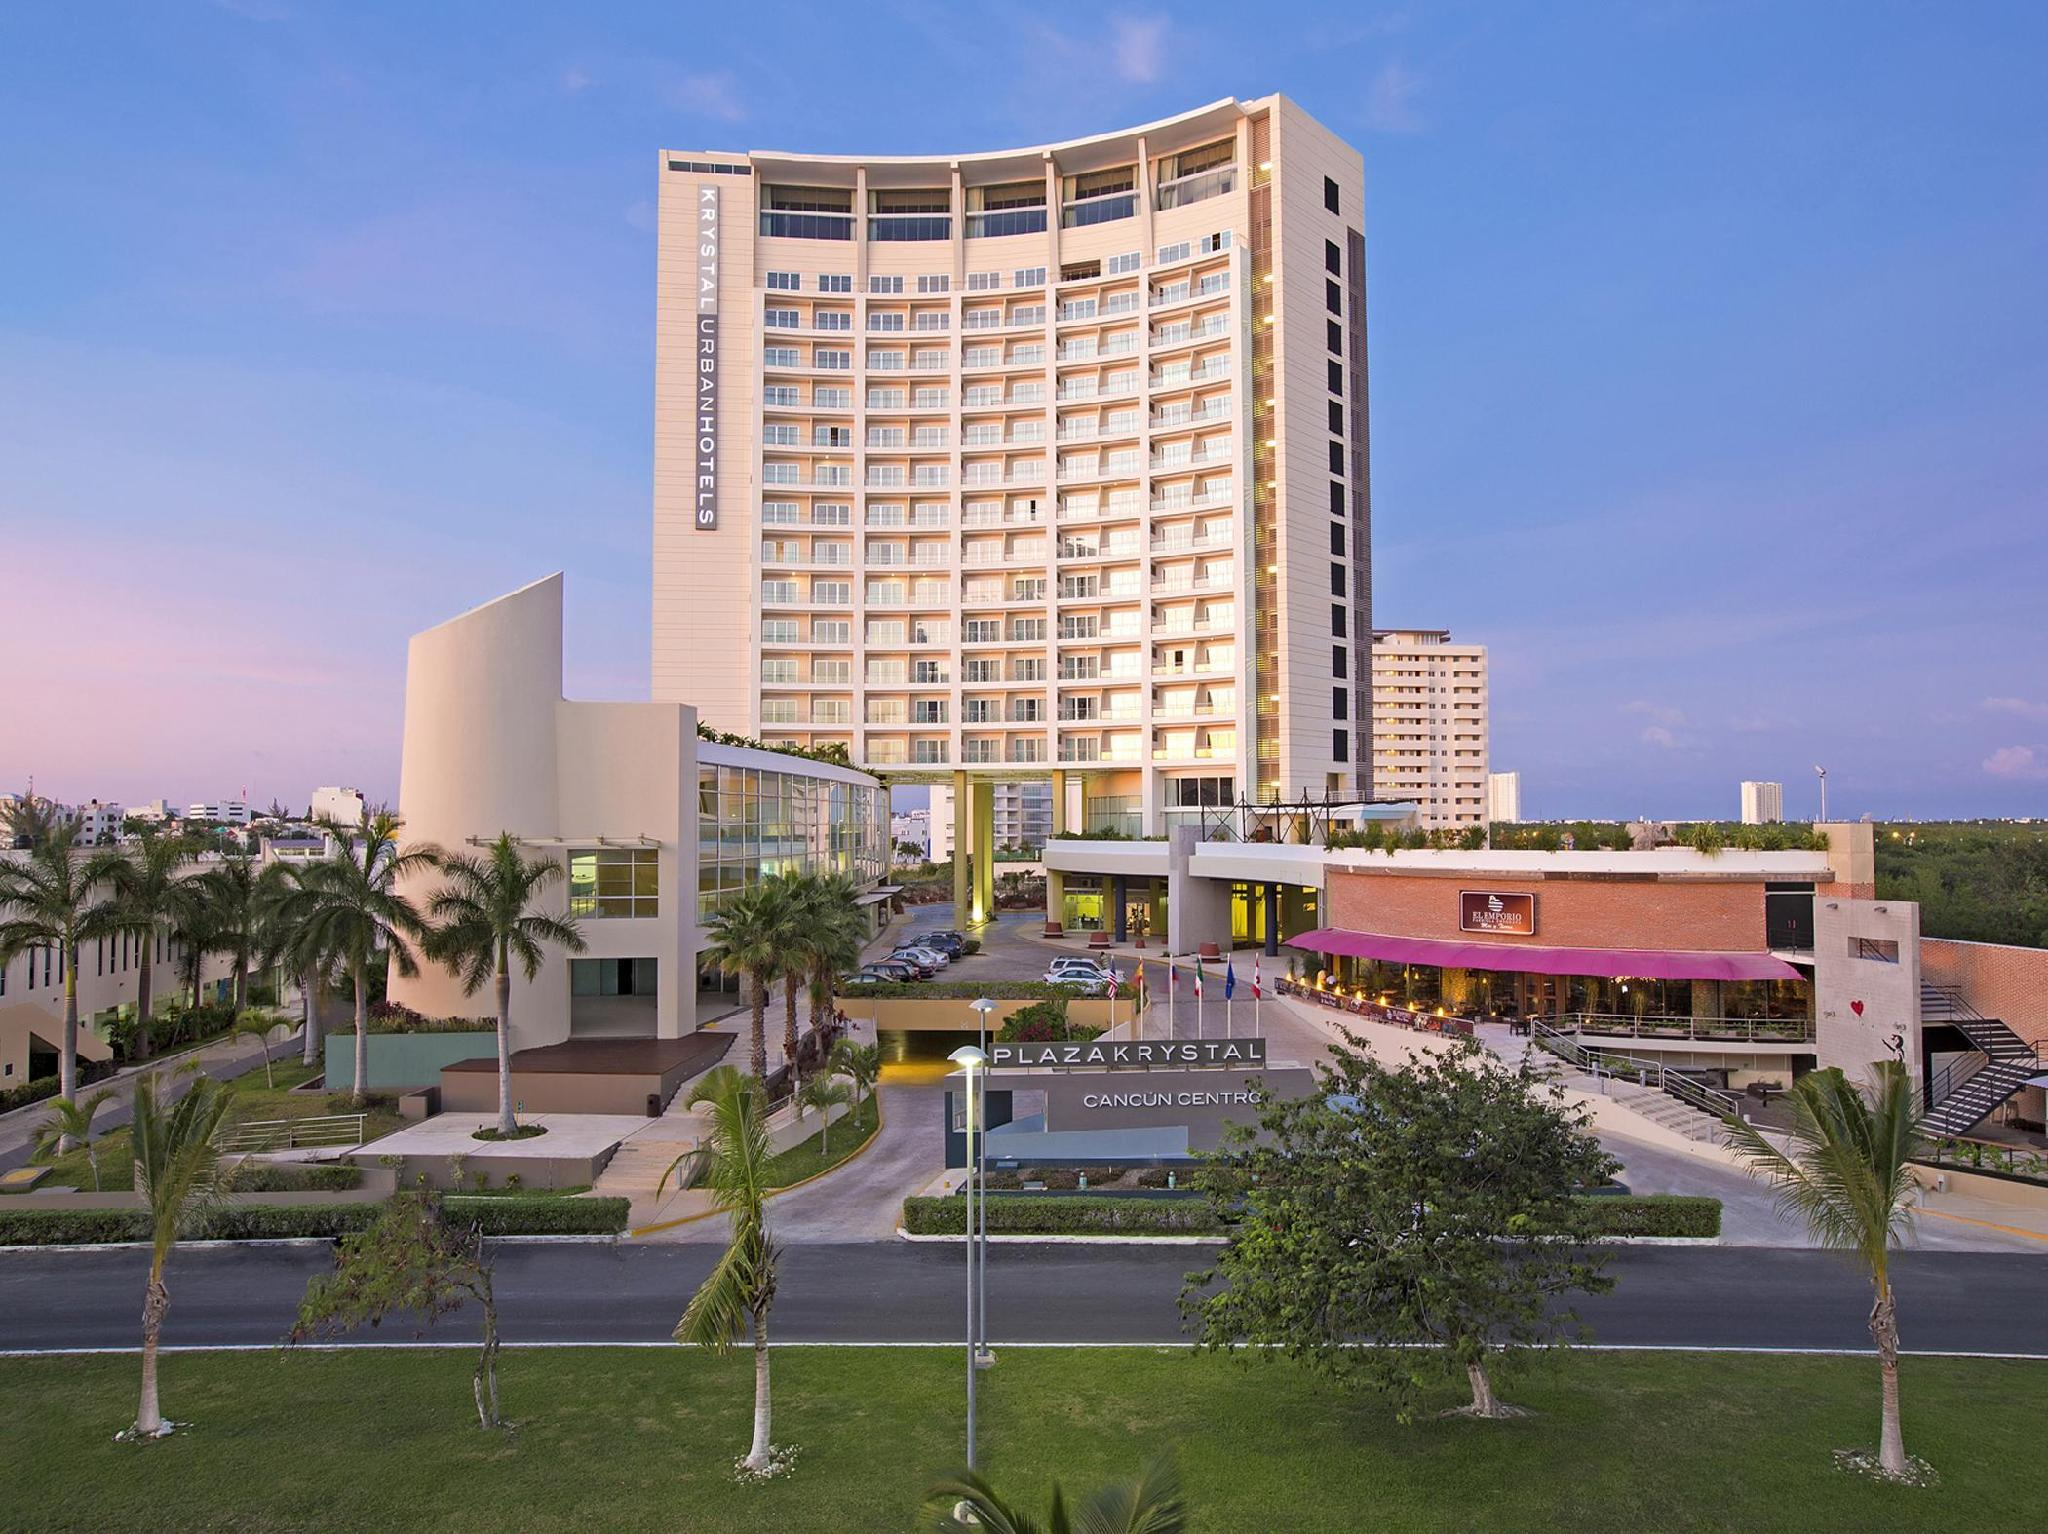 B2B Malecon Plaza Hotel & Convention Center Cancun